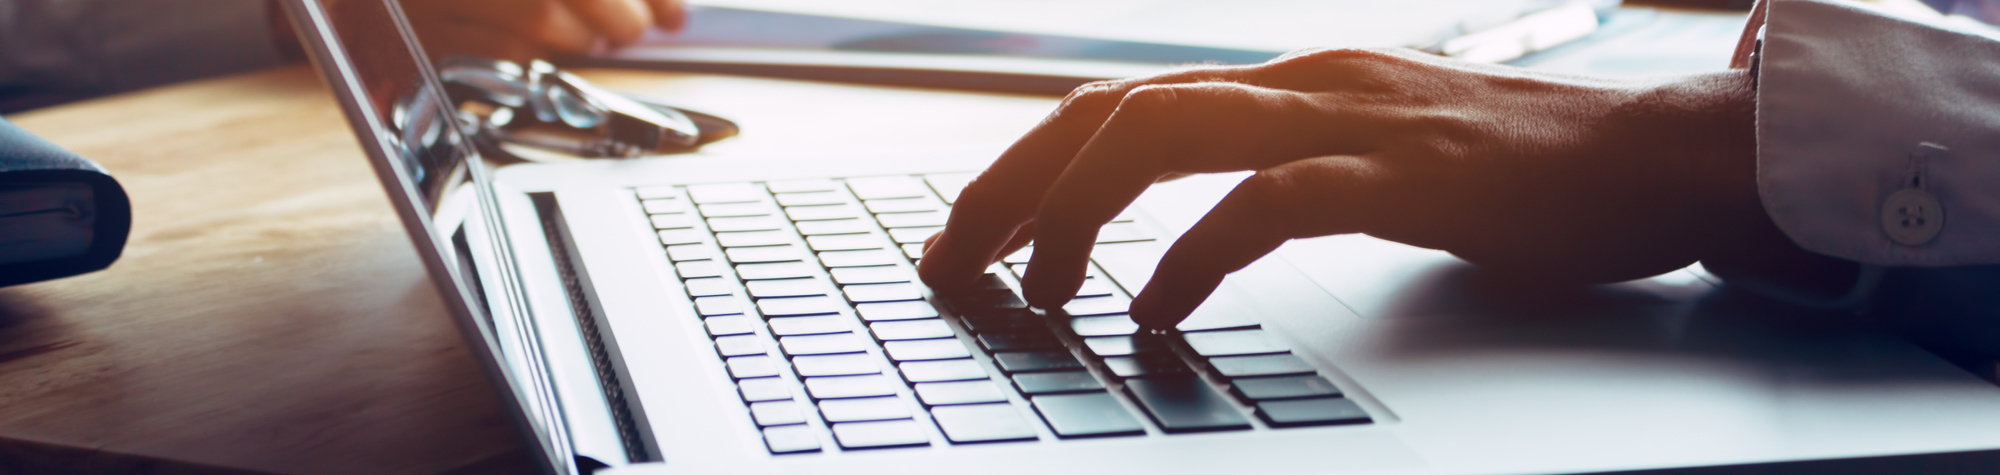 Search Contact Form Header Image. Featuring the hands of a male candidate typing his contact details on his laptop keyboard so that Search Consultancy can respond to his query about jobs and careers. Search Consultancy.